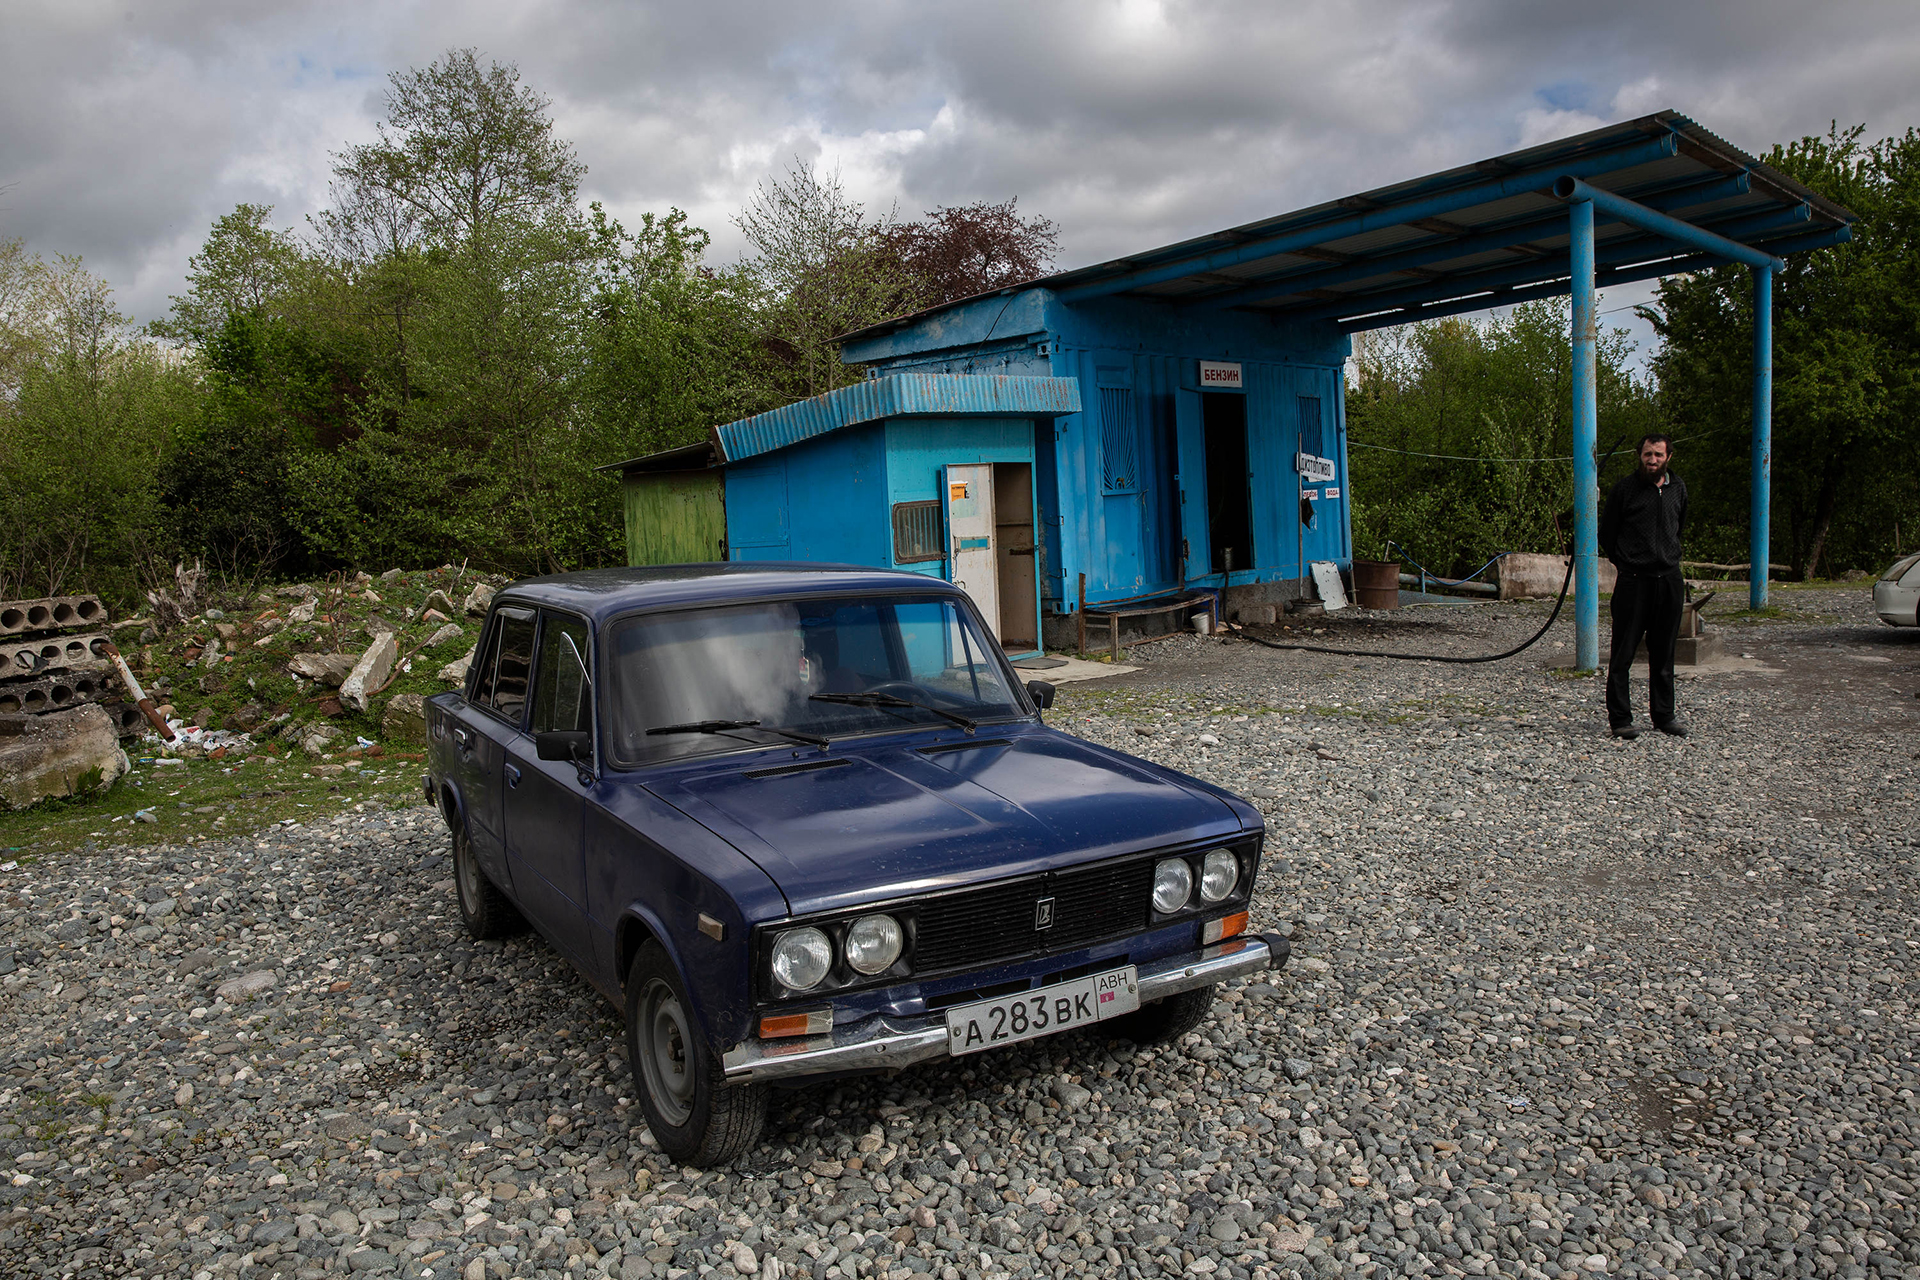 An old Soviet car sits in front of a refueling station near Labra, Abkhazia on 20 April 2019.